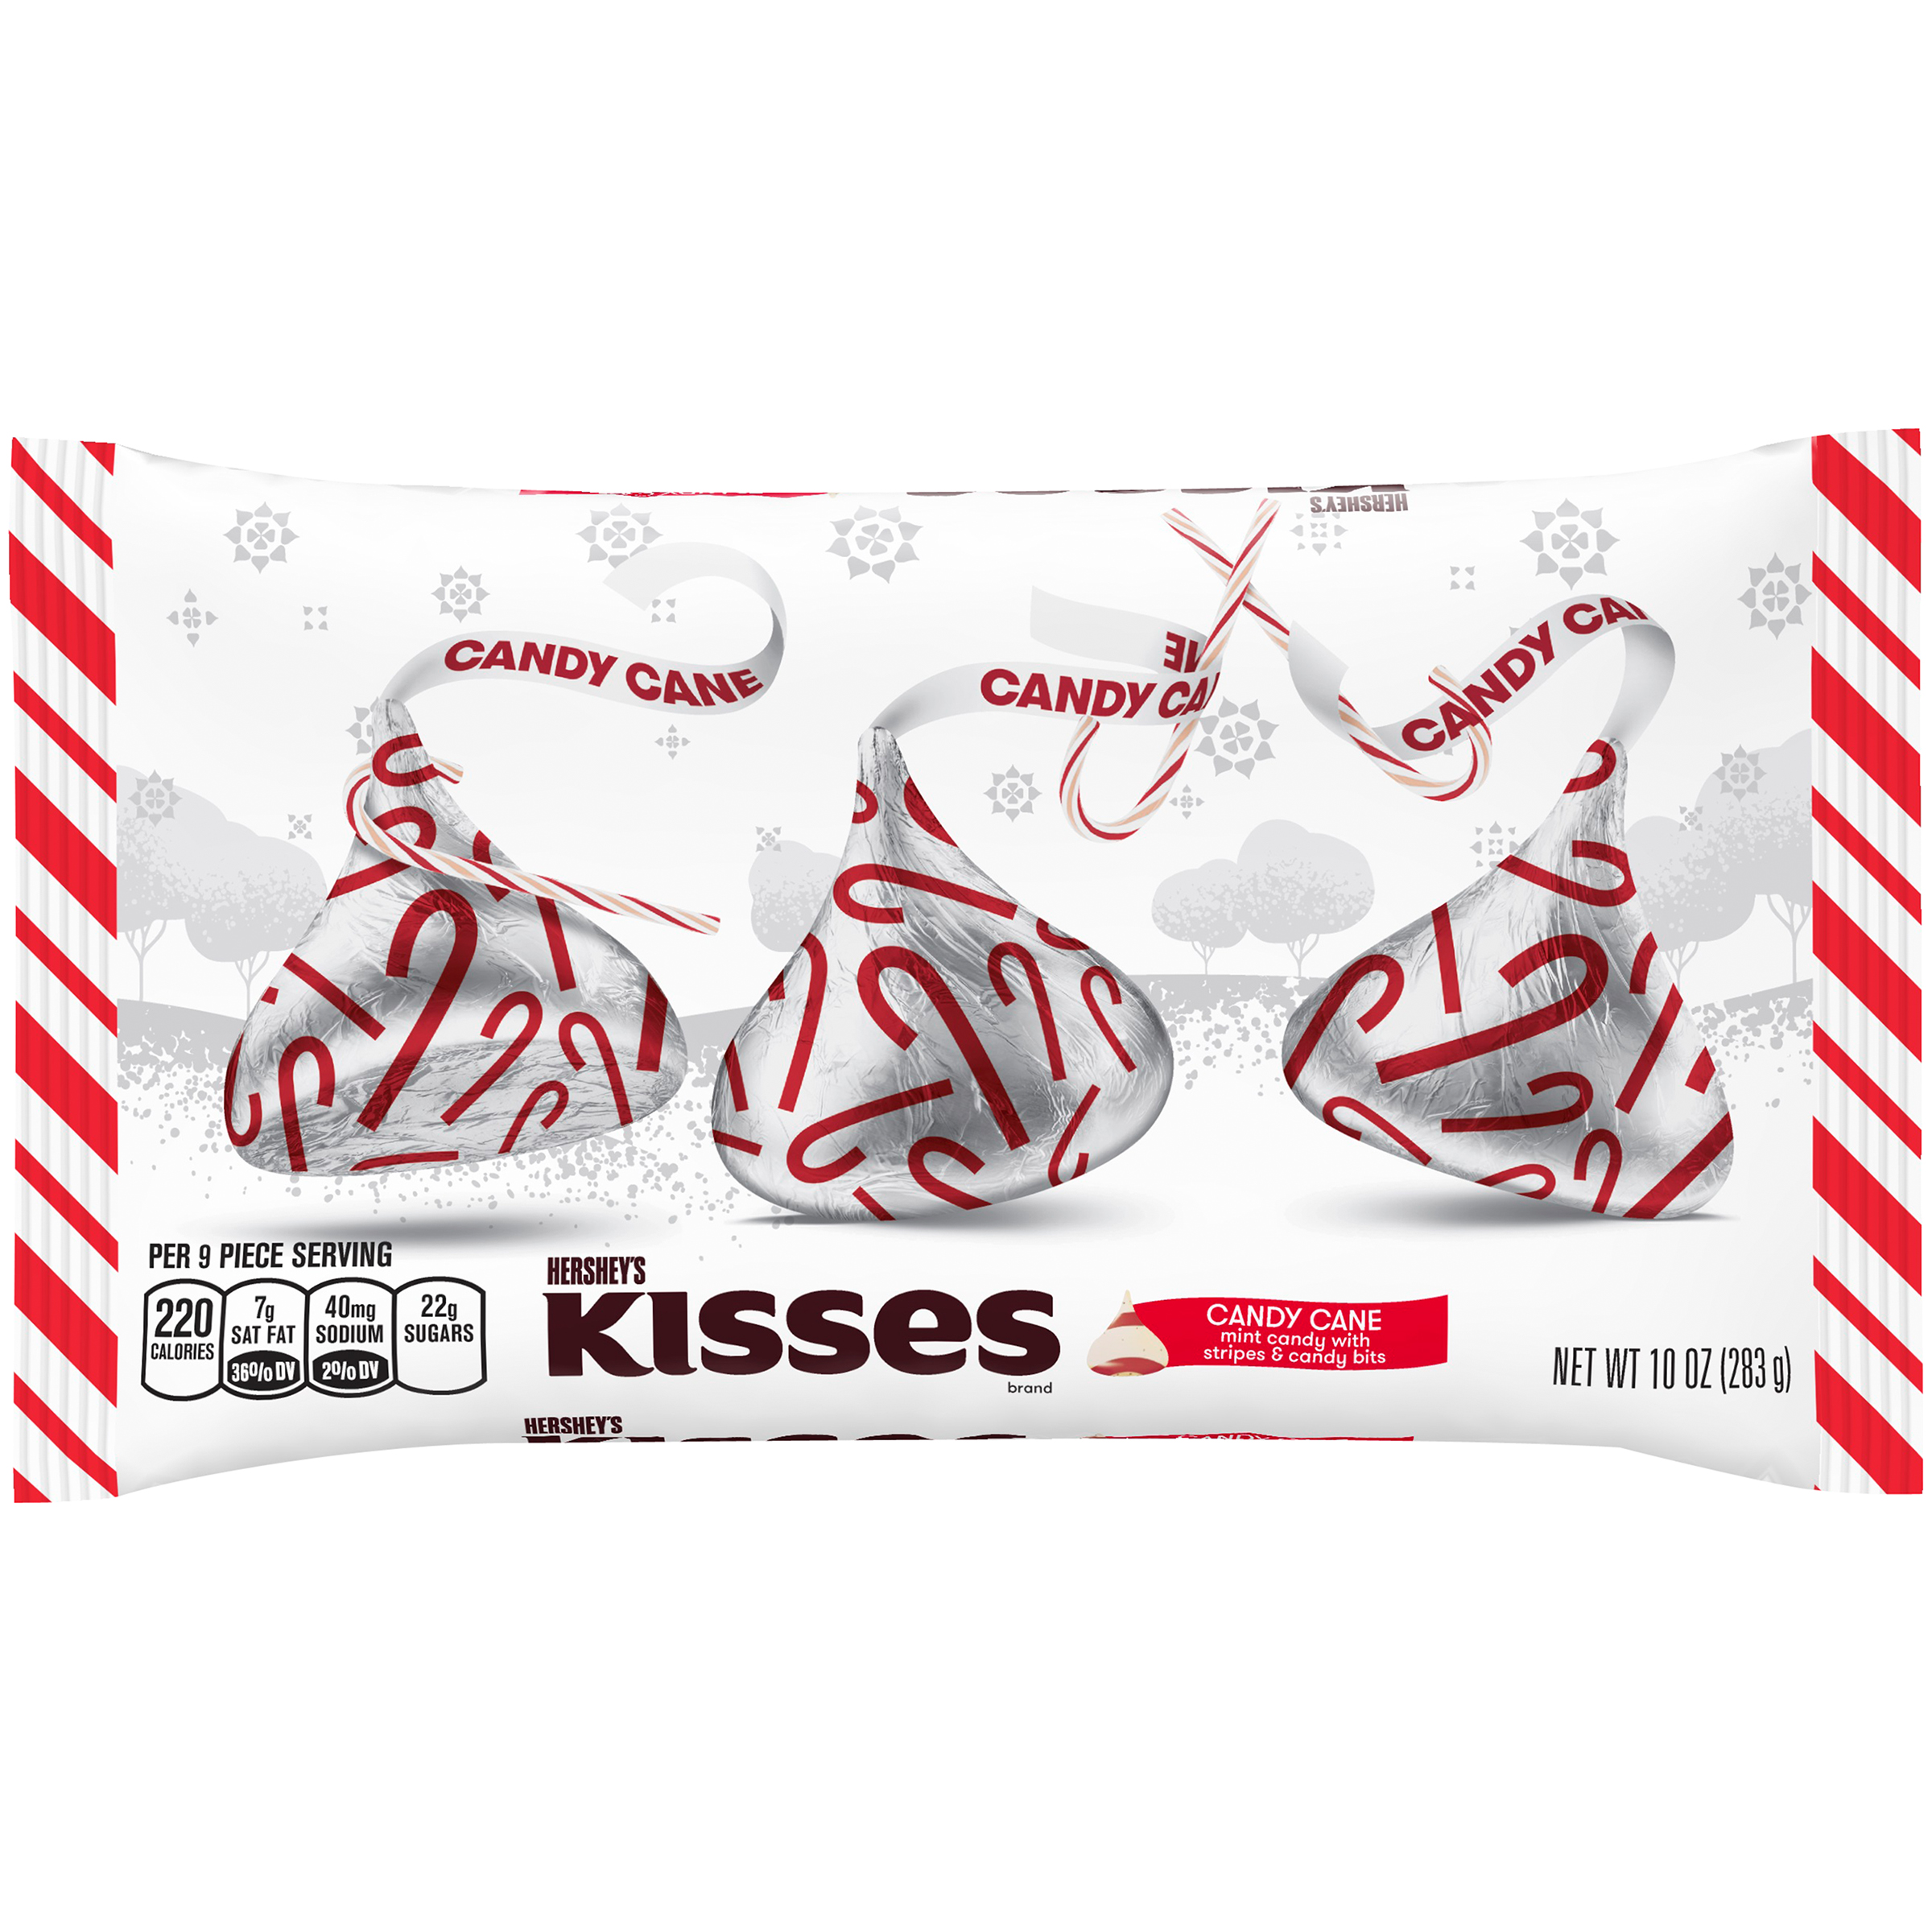 KISSES Holiday Candy Cane Mint Candies, 10 oz